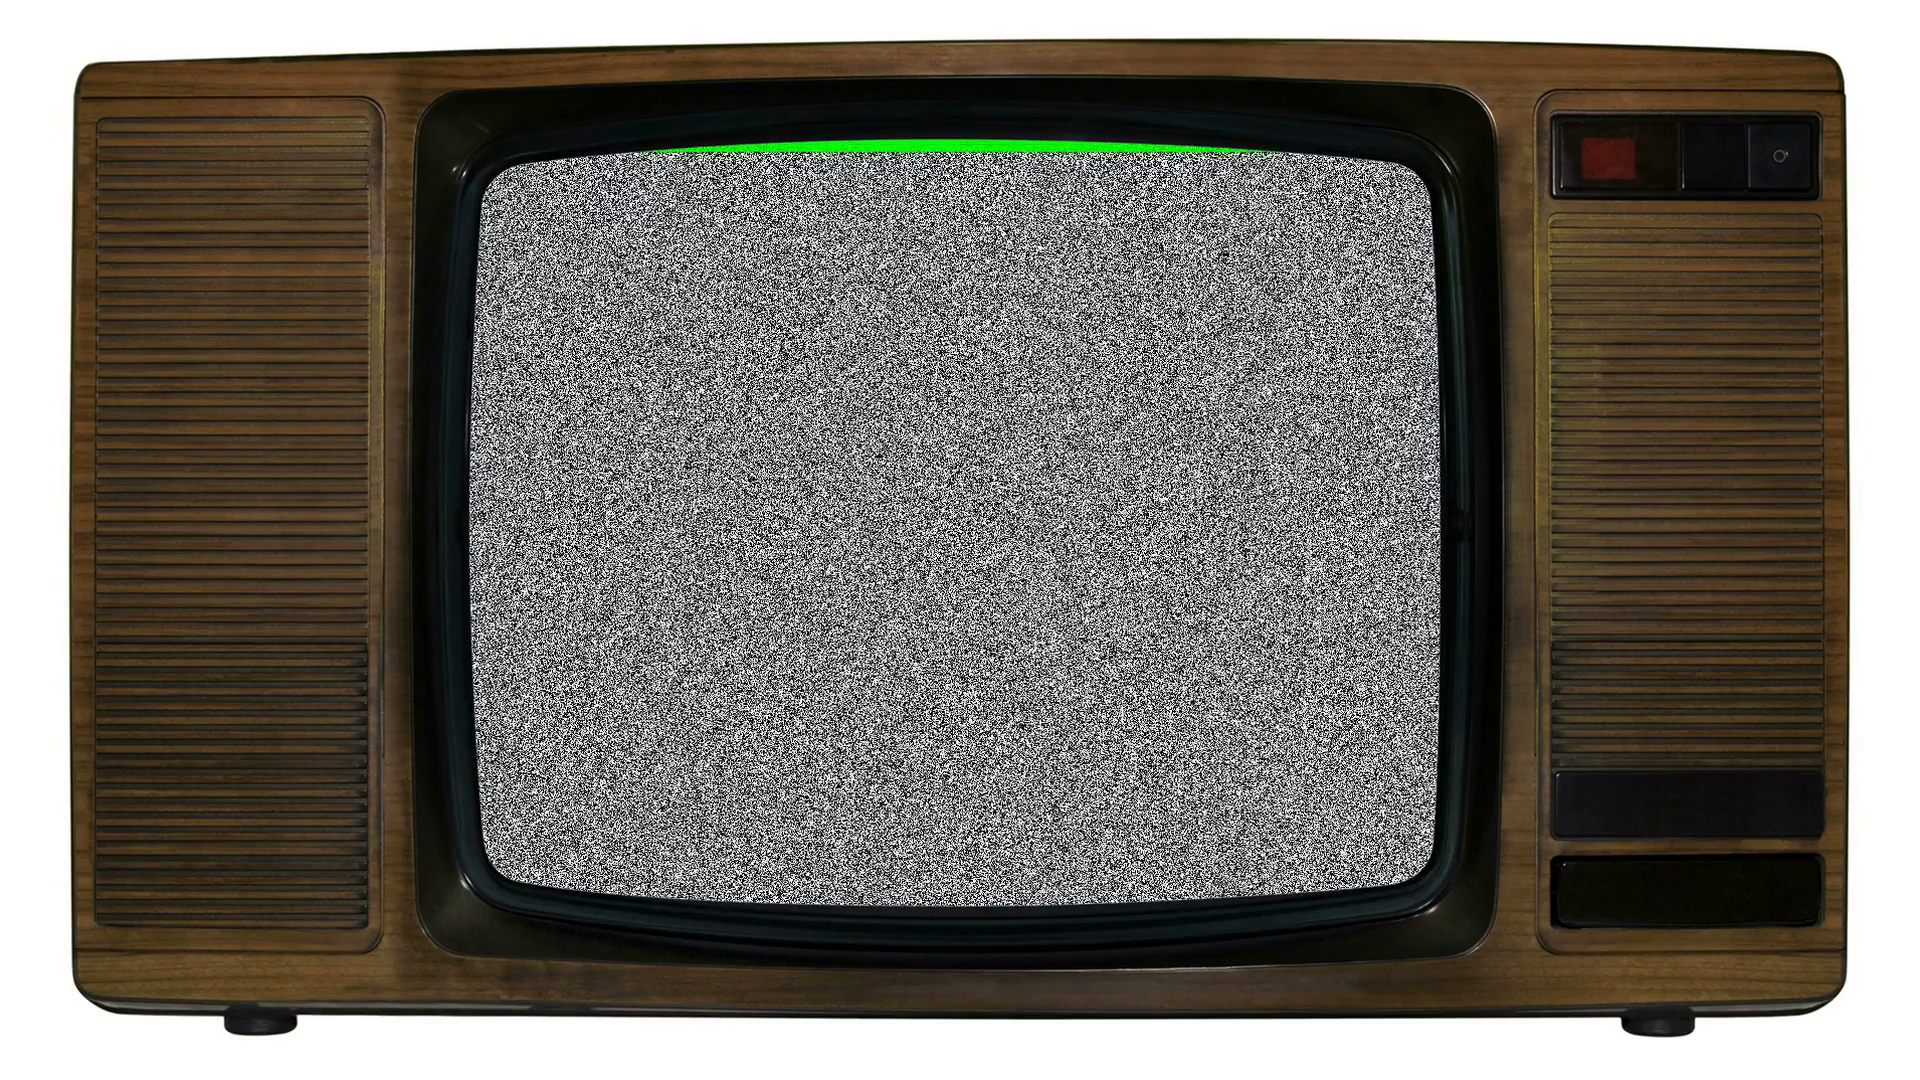 Noise on old television with green chroma banner Motion Background ...